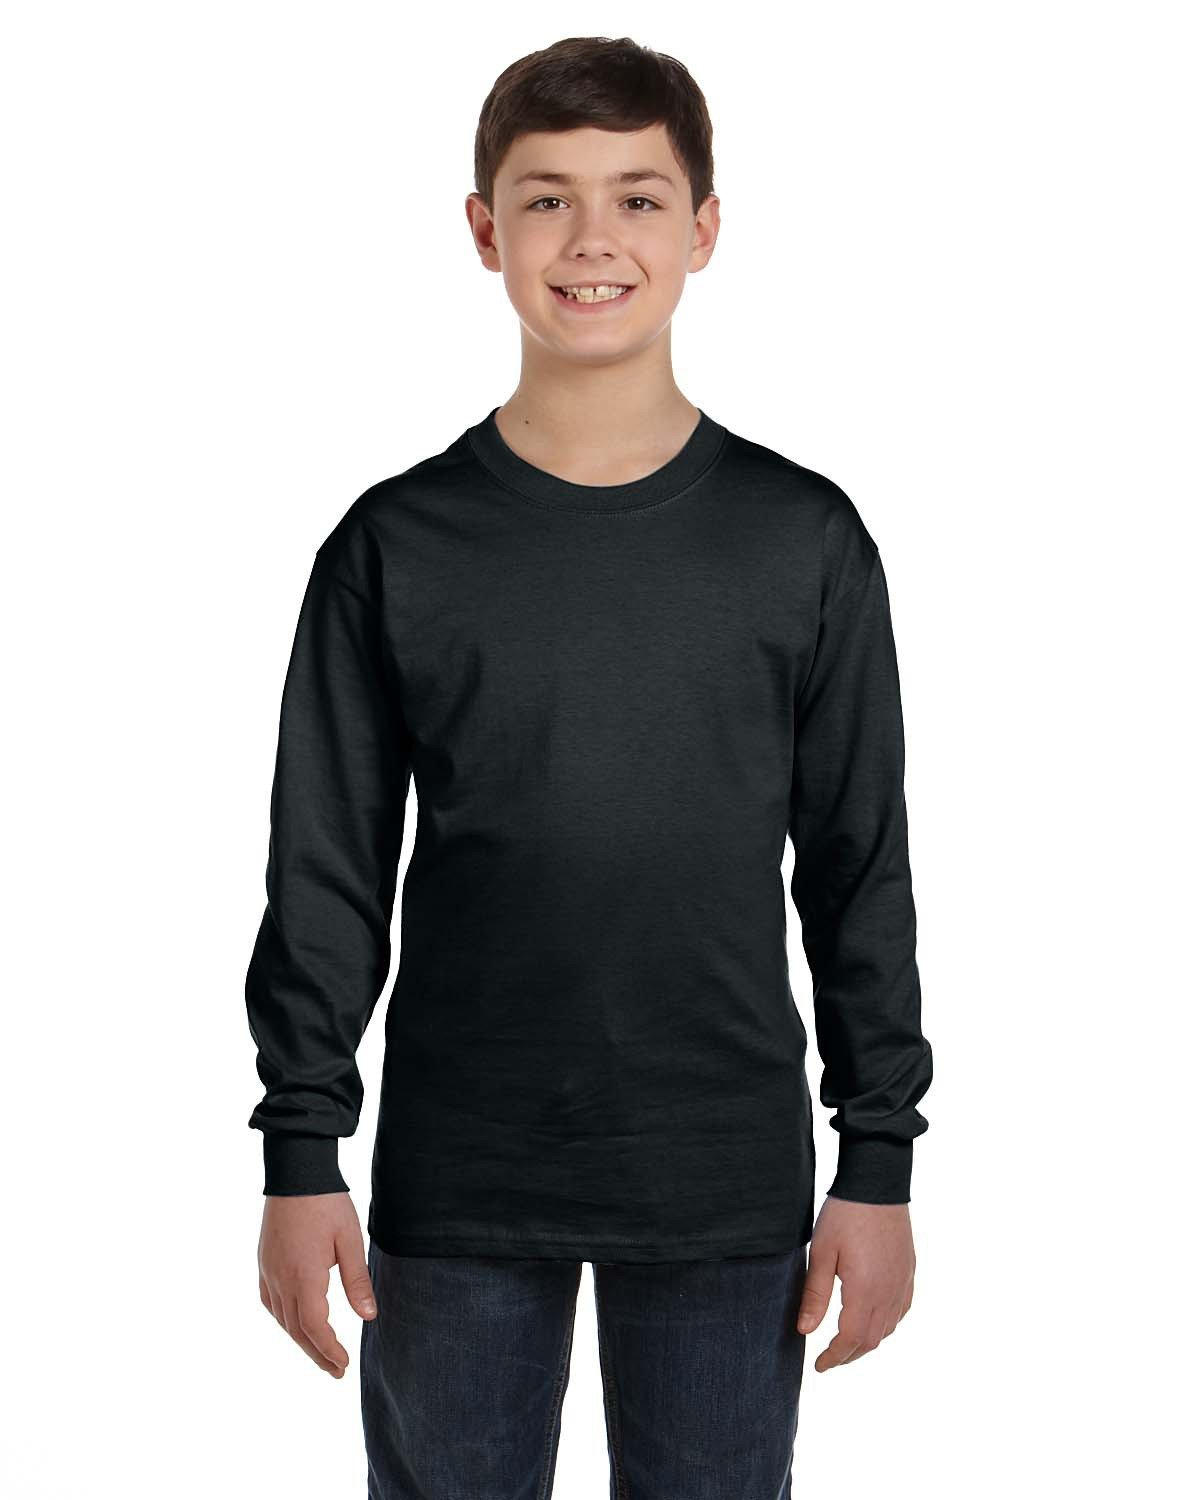 Gildan - G540B - Youth 5.3 oz. Long-Sleeve T-Shirt